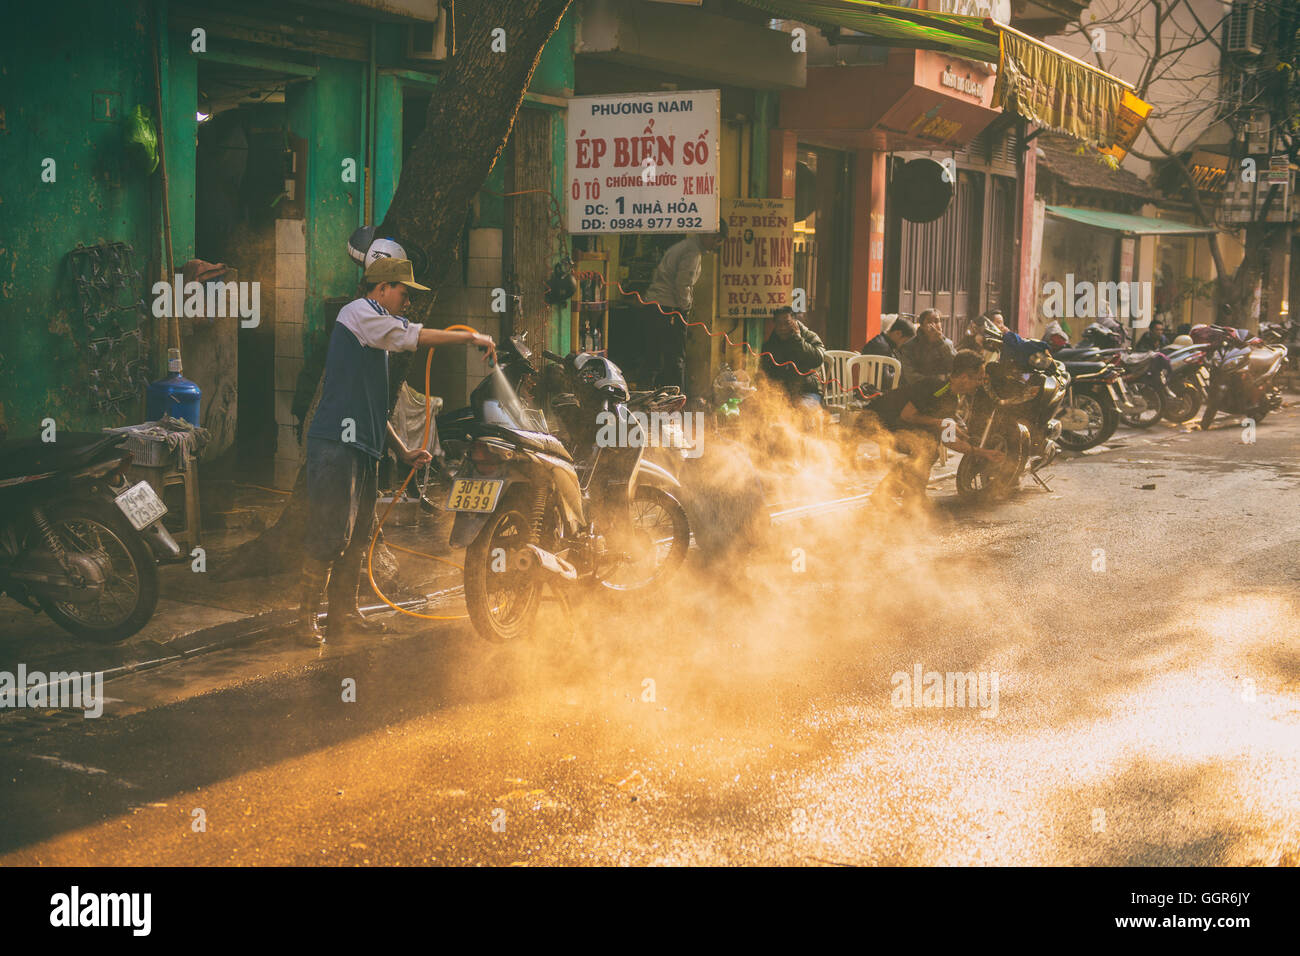 Hanoi, Vietnam - January 13, 2015 - The man washing the motorcycle in the afternoon day - Stock Image